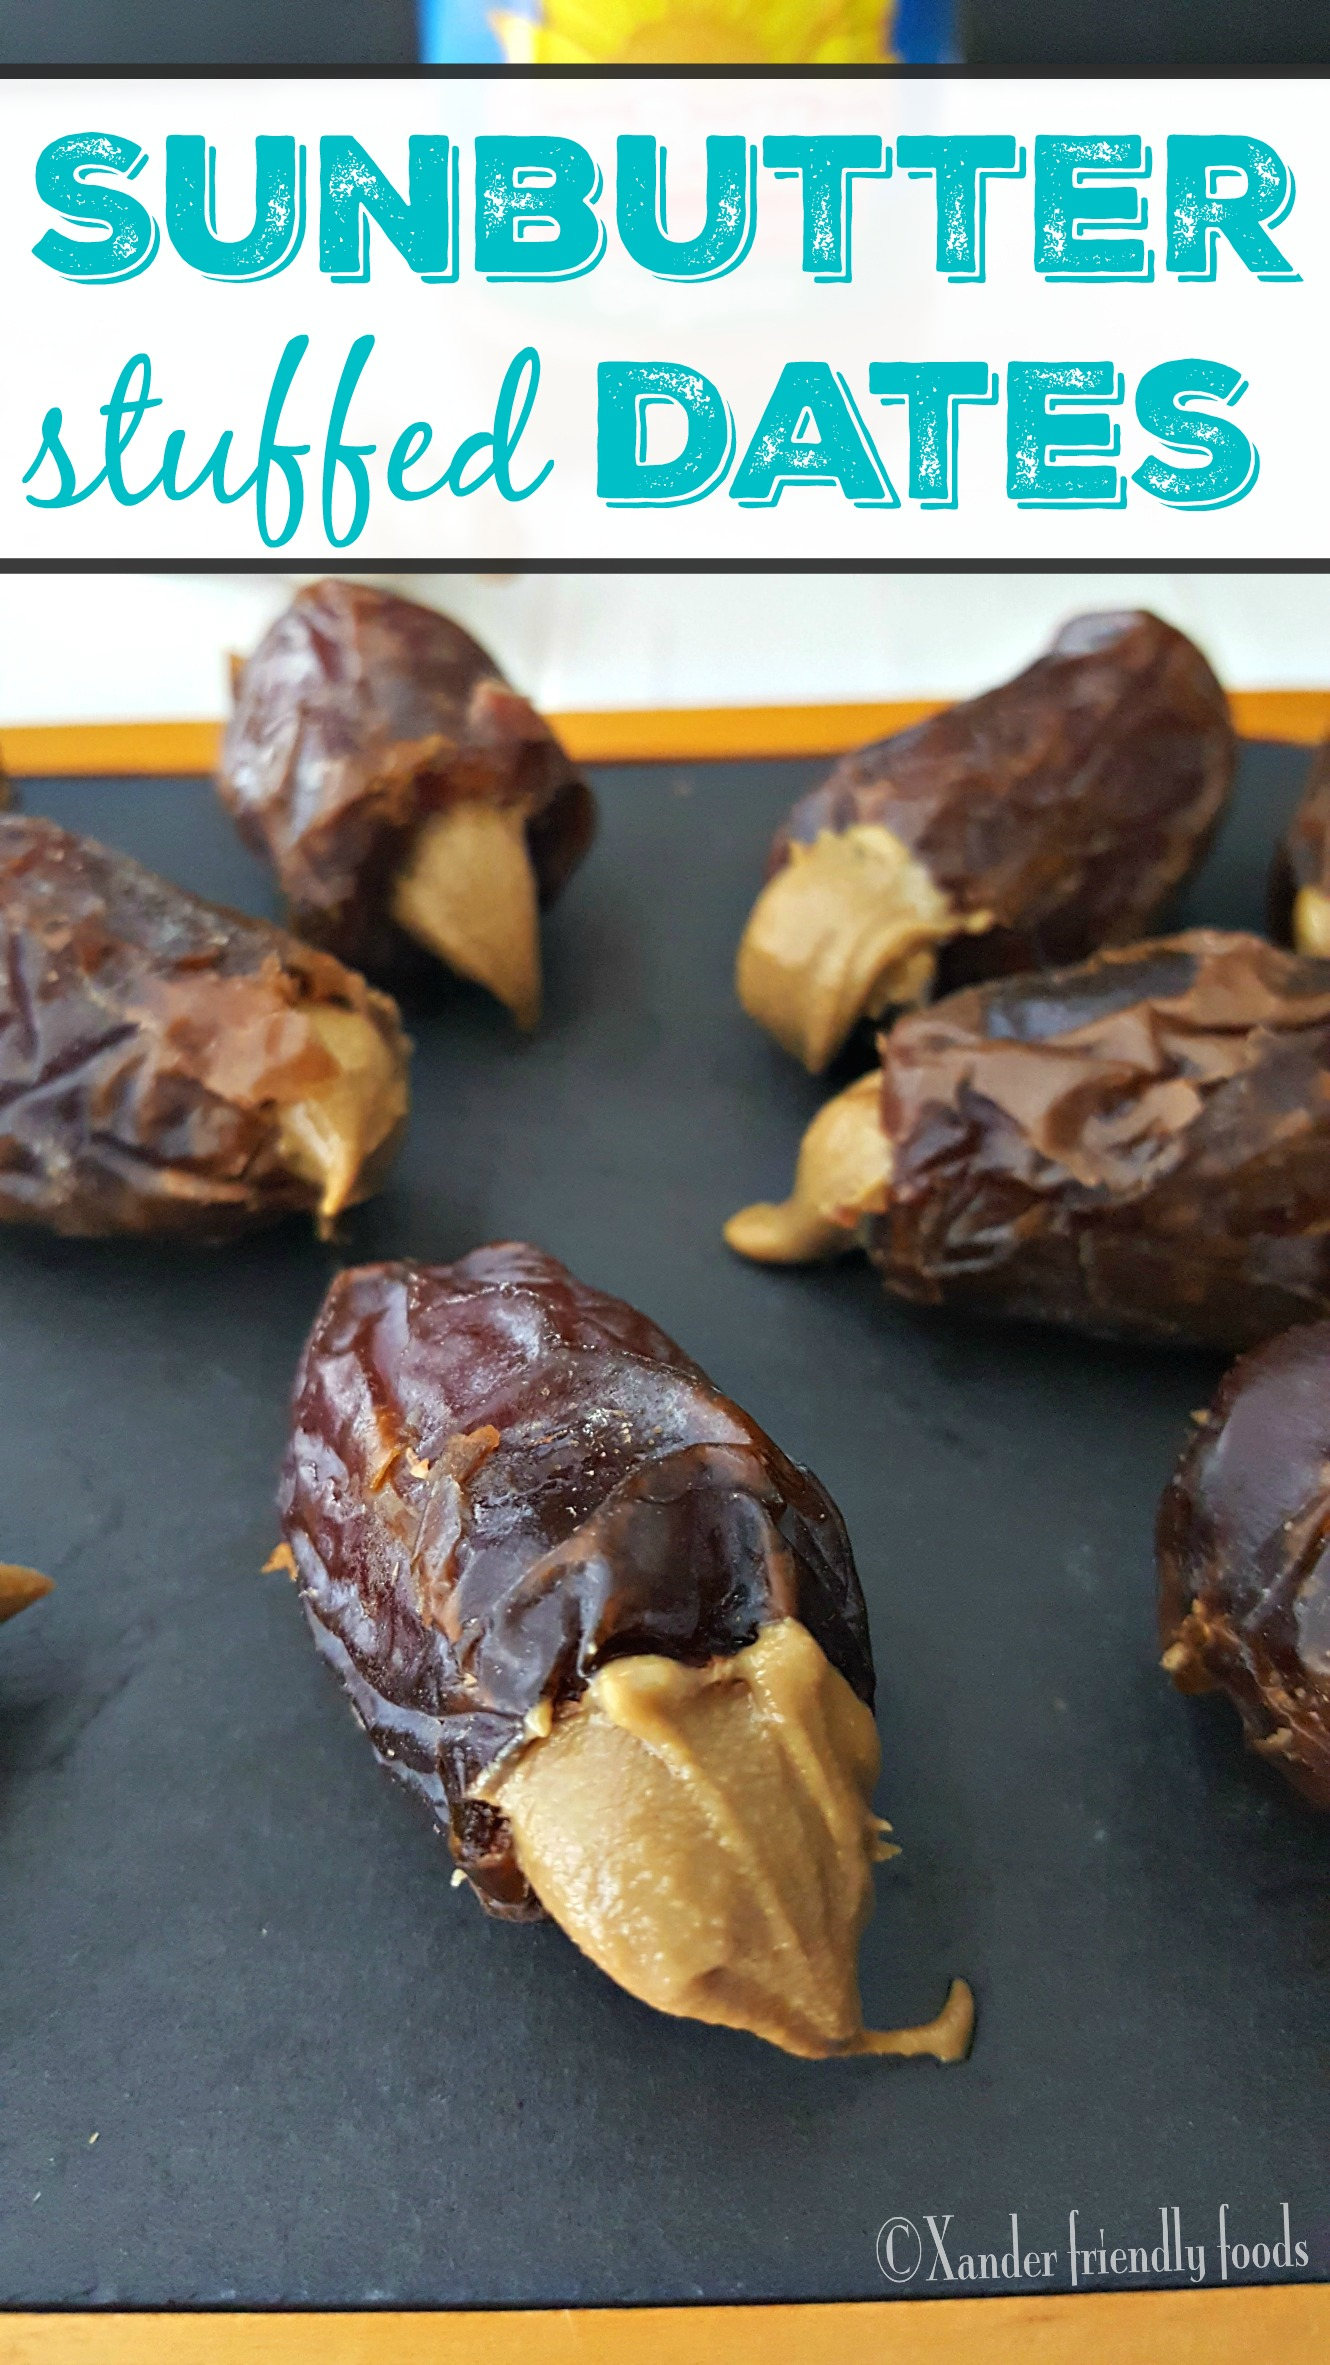 Decadent Dates- stuffed with Organic SunButter and naturally sweet, raw, healthy, Top 8 free and decadently delicious